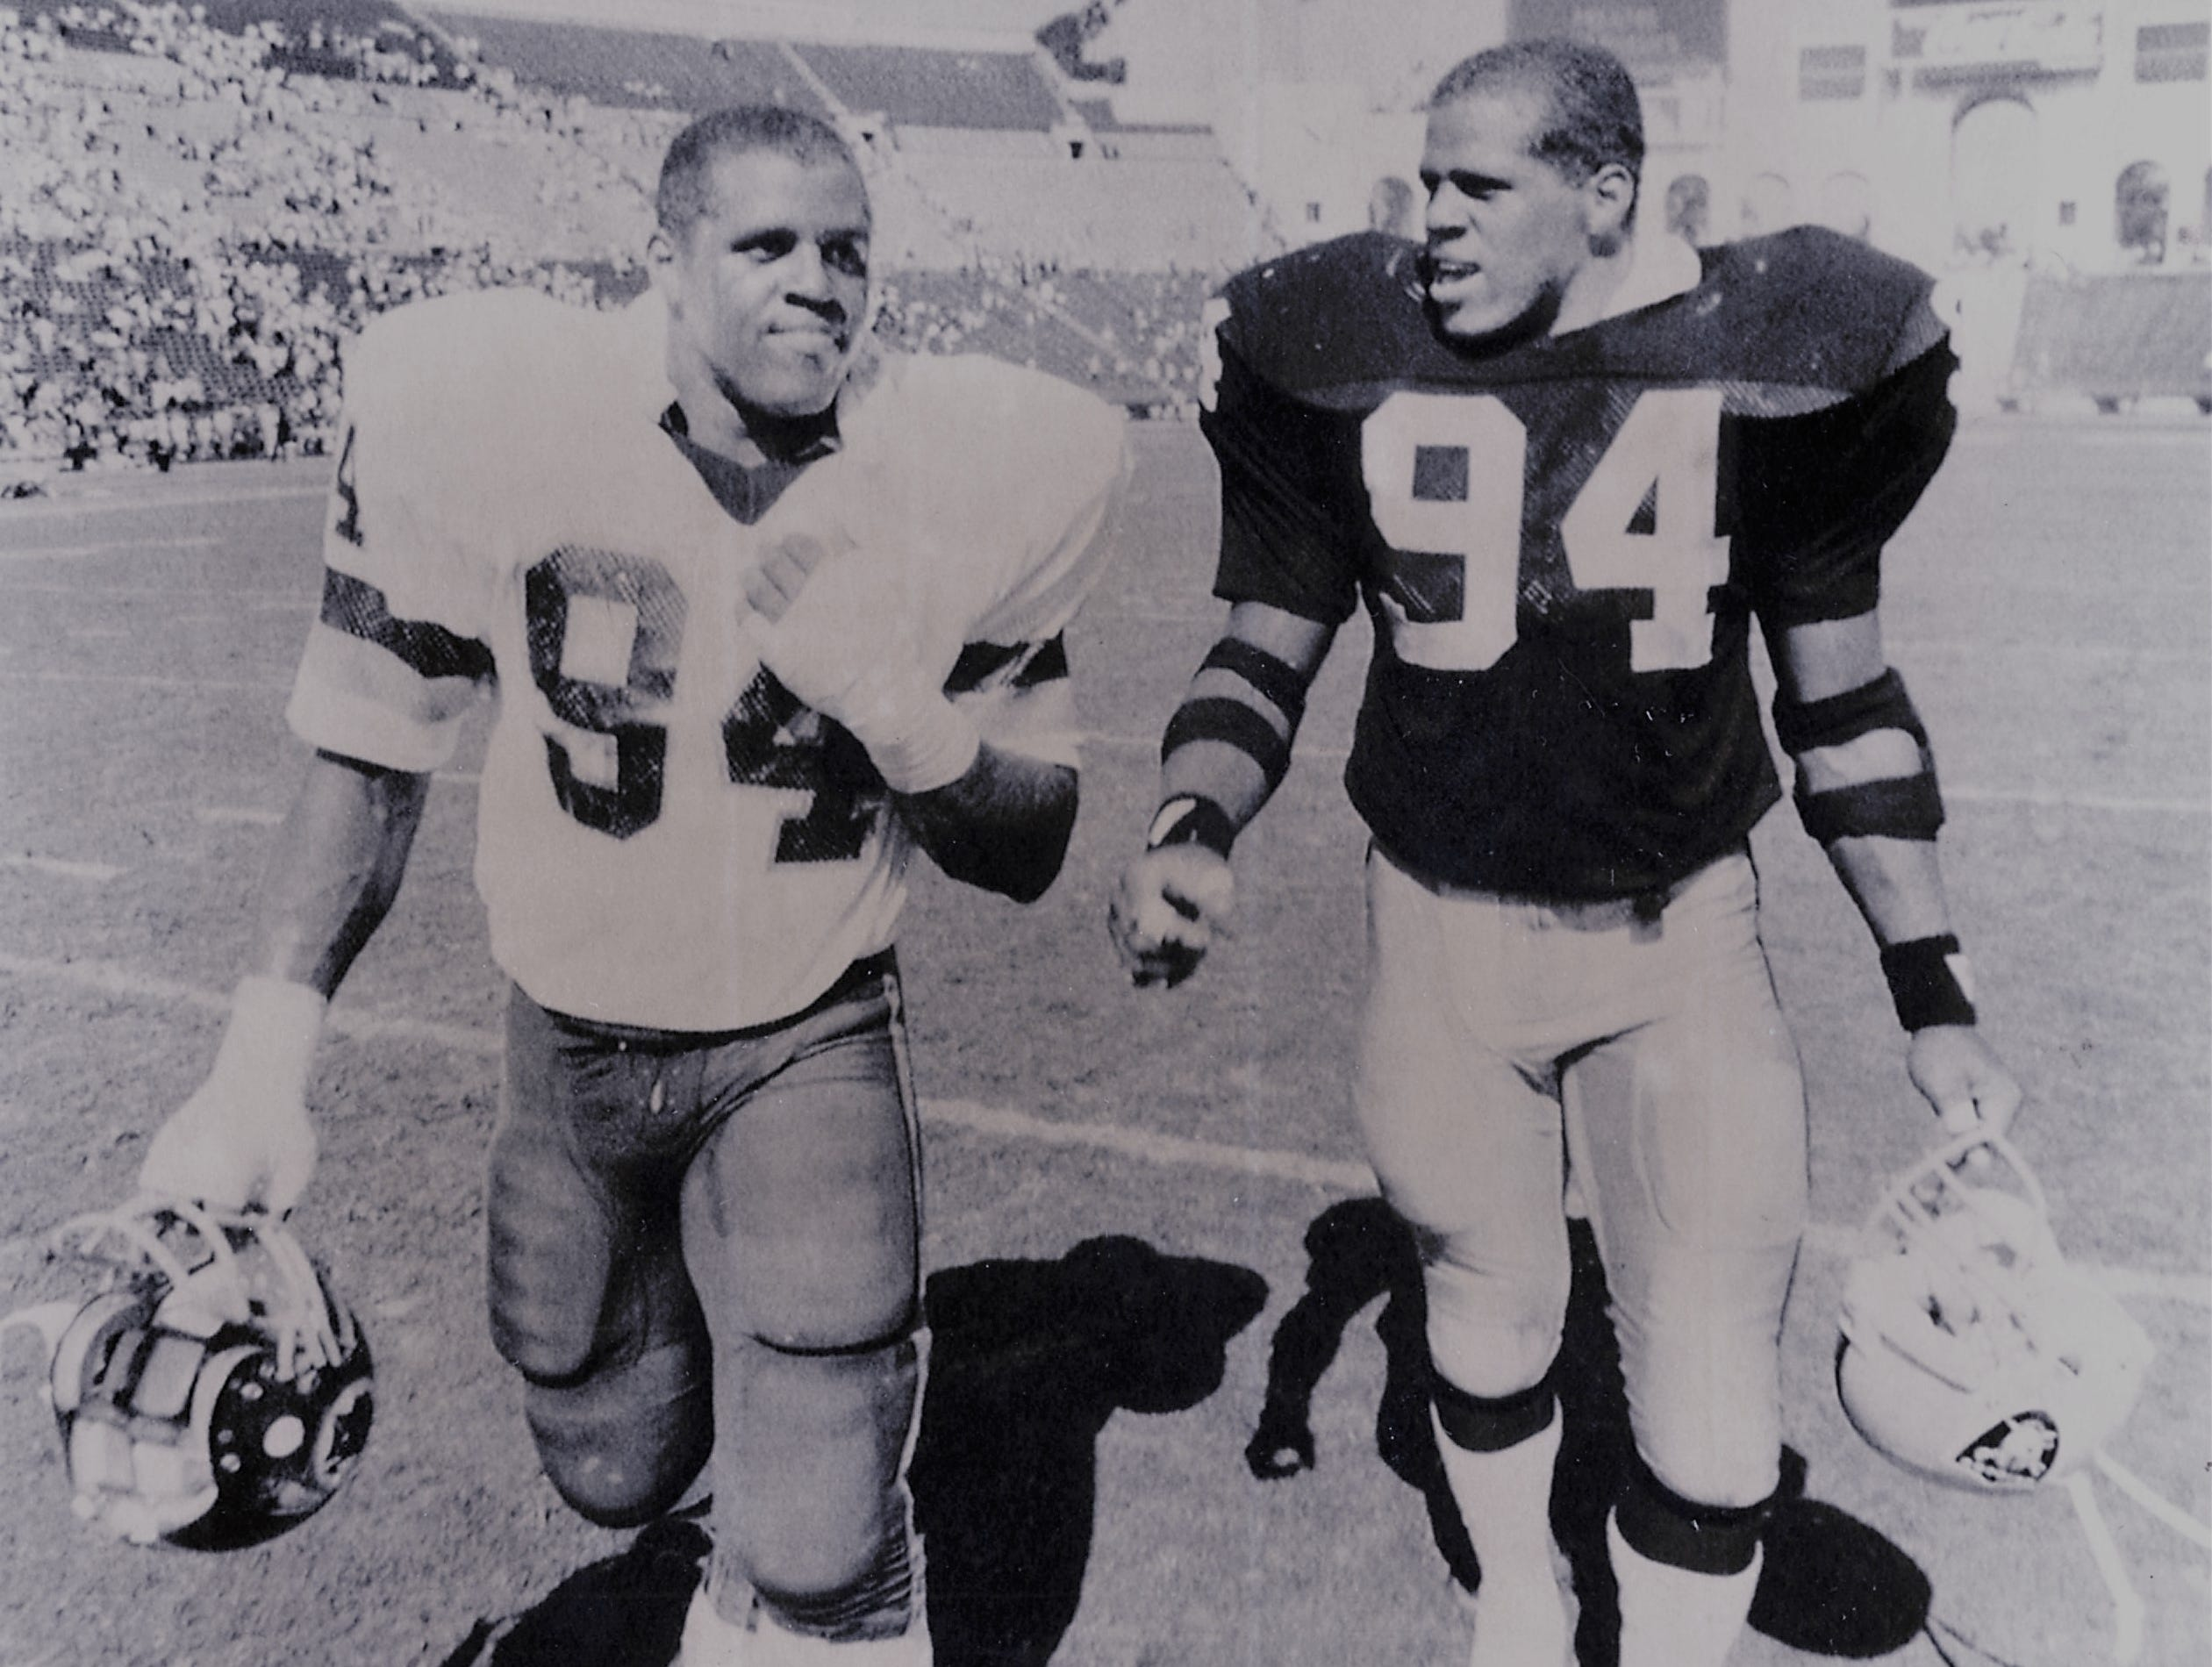 Raleigh and Reggie McKenzie, right, went head to head in the NFL, August 18, 1985. Raleigh played for the Washington Redskins and Reggie played for the (then) Los Angeles Raiders.